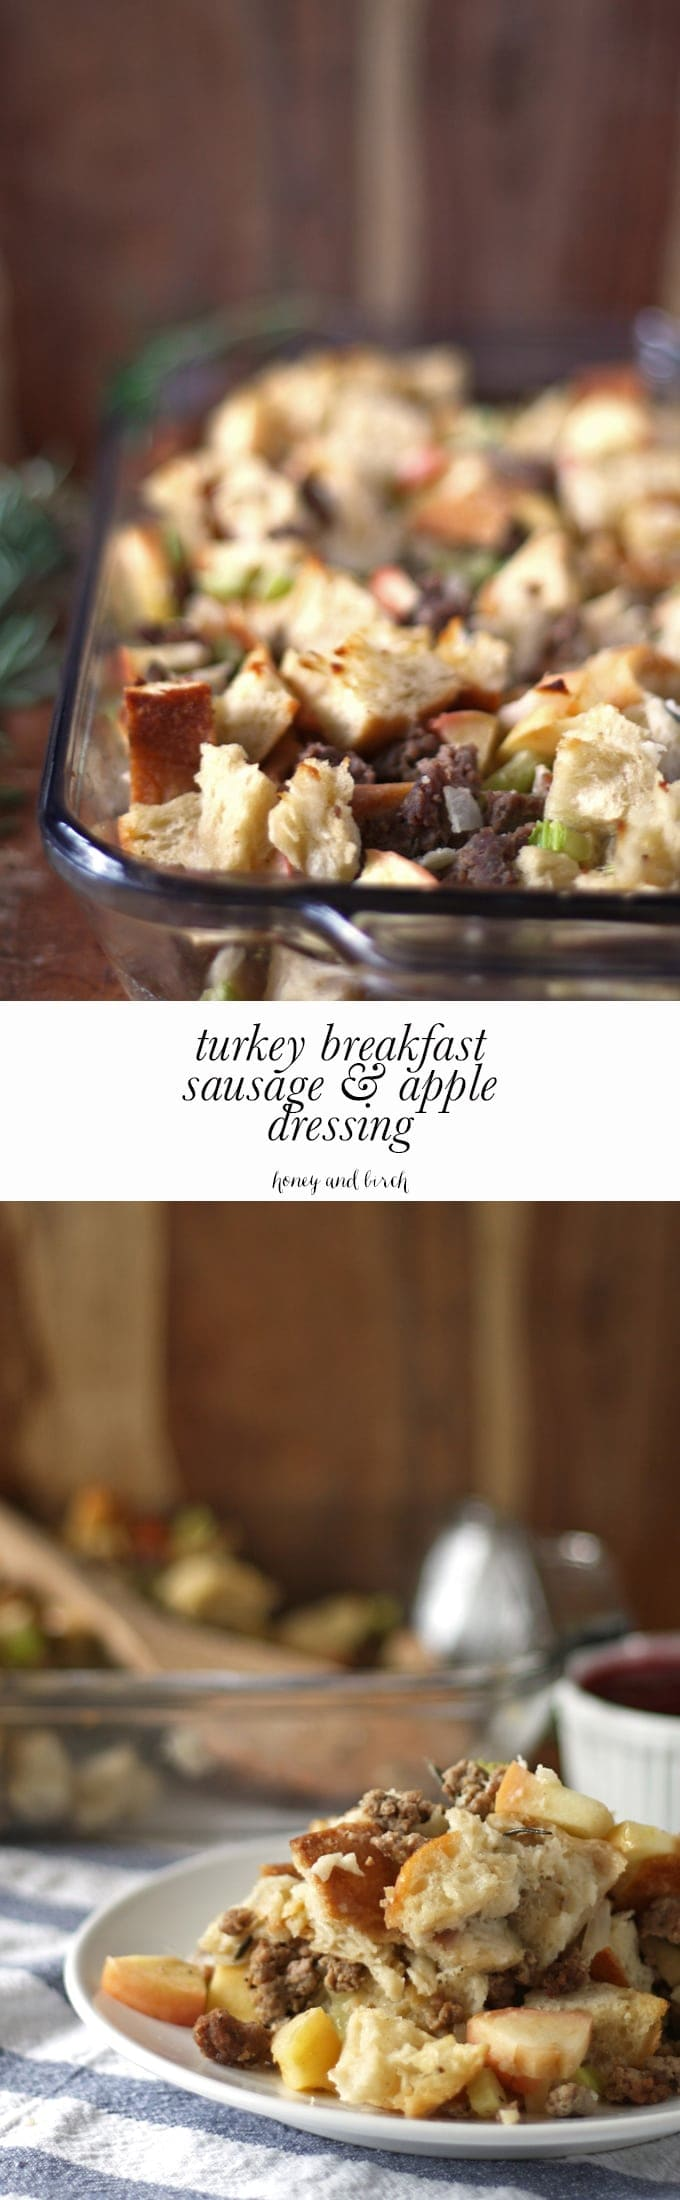 Turkey breakfast sausage and apple dressing - perfect for holiday dinners! | www.honeyandbirch.com | #thanksgiving